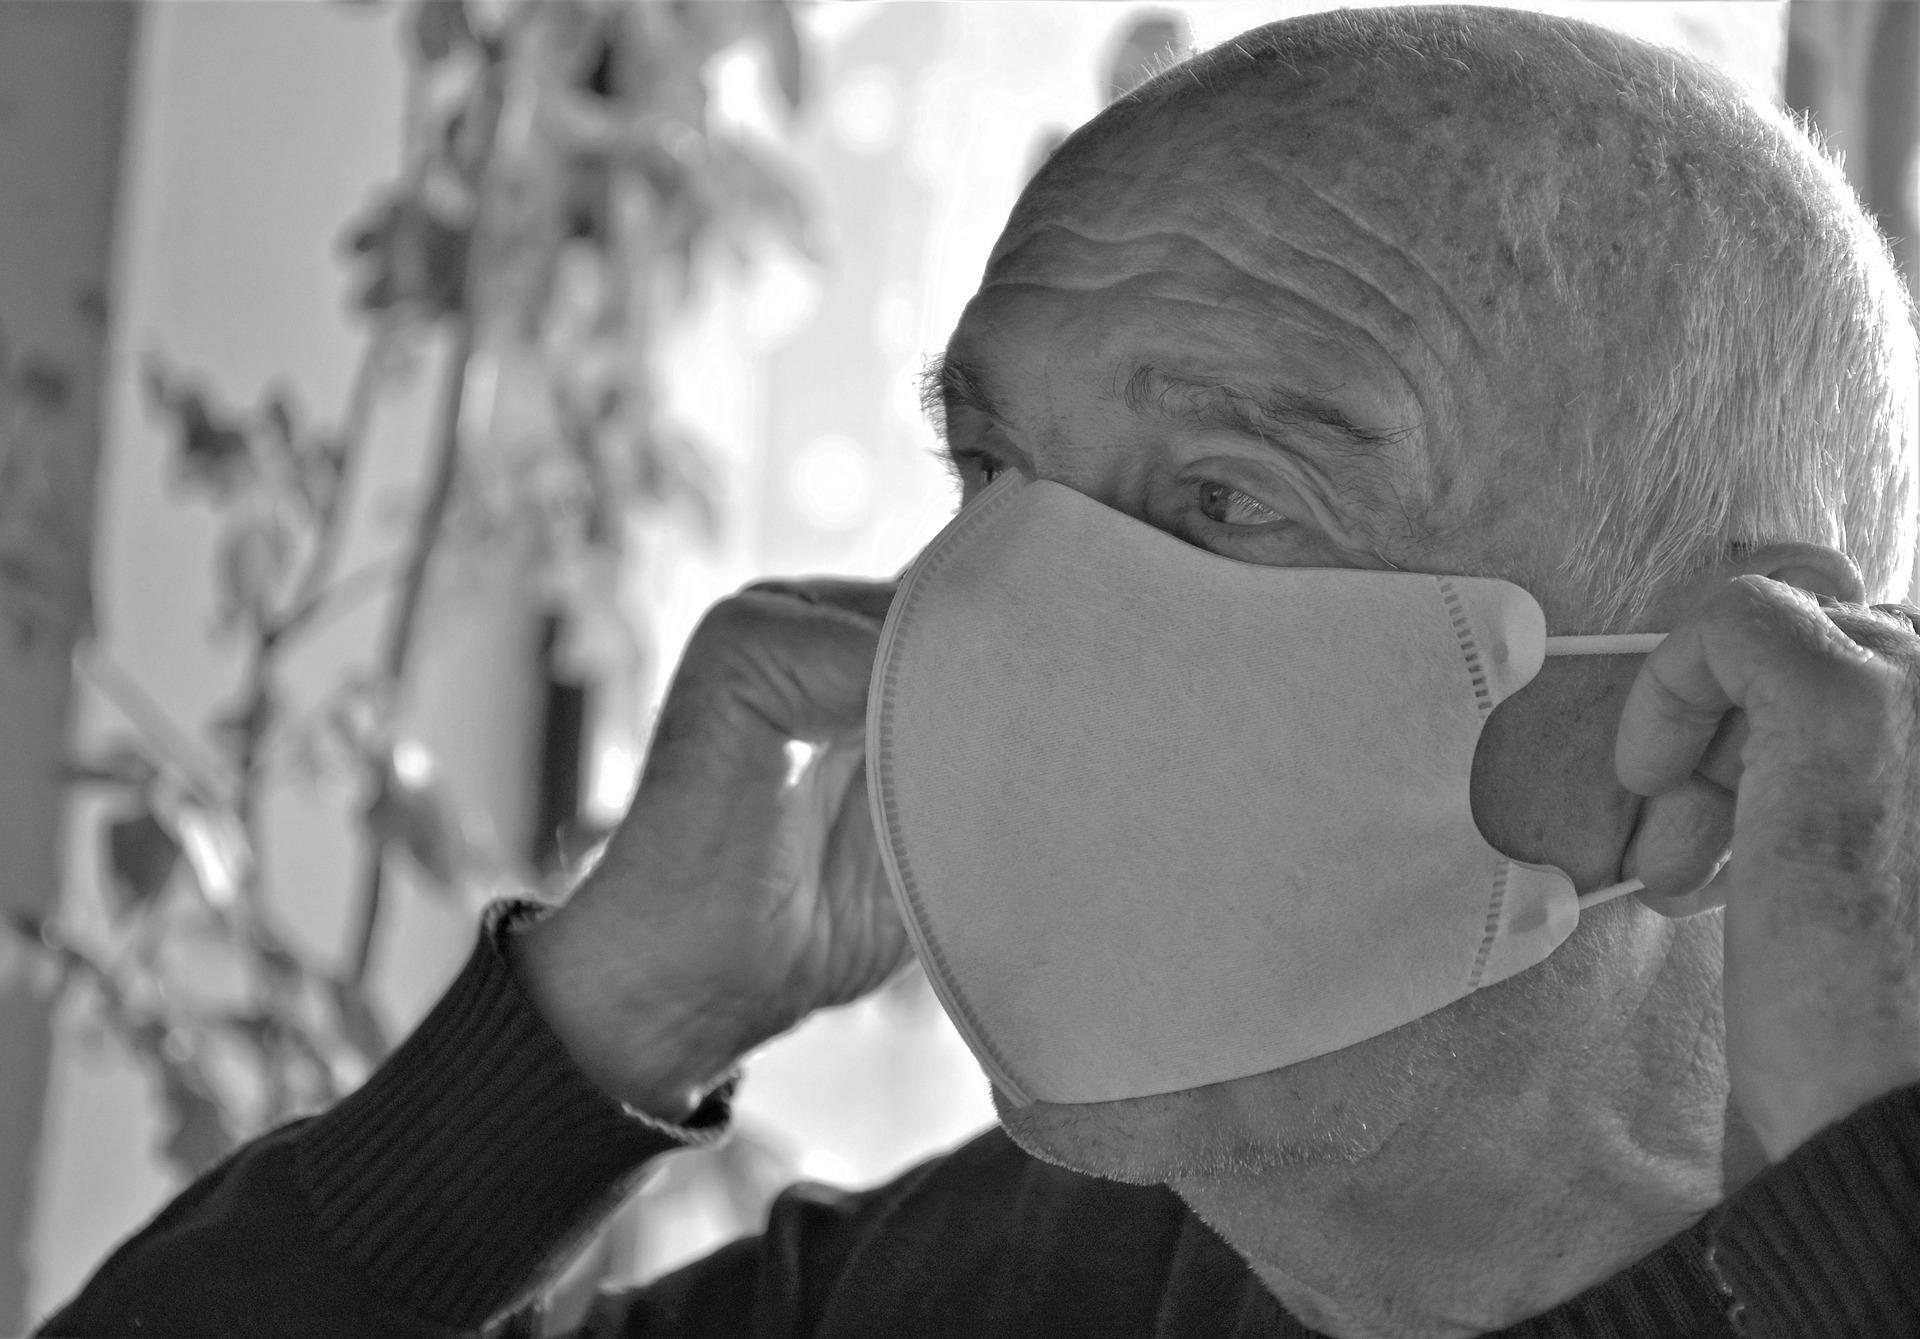 Elderly man putting on mask.